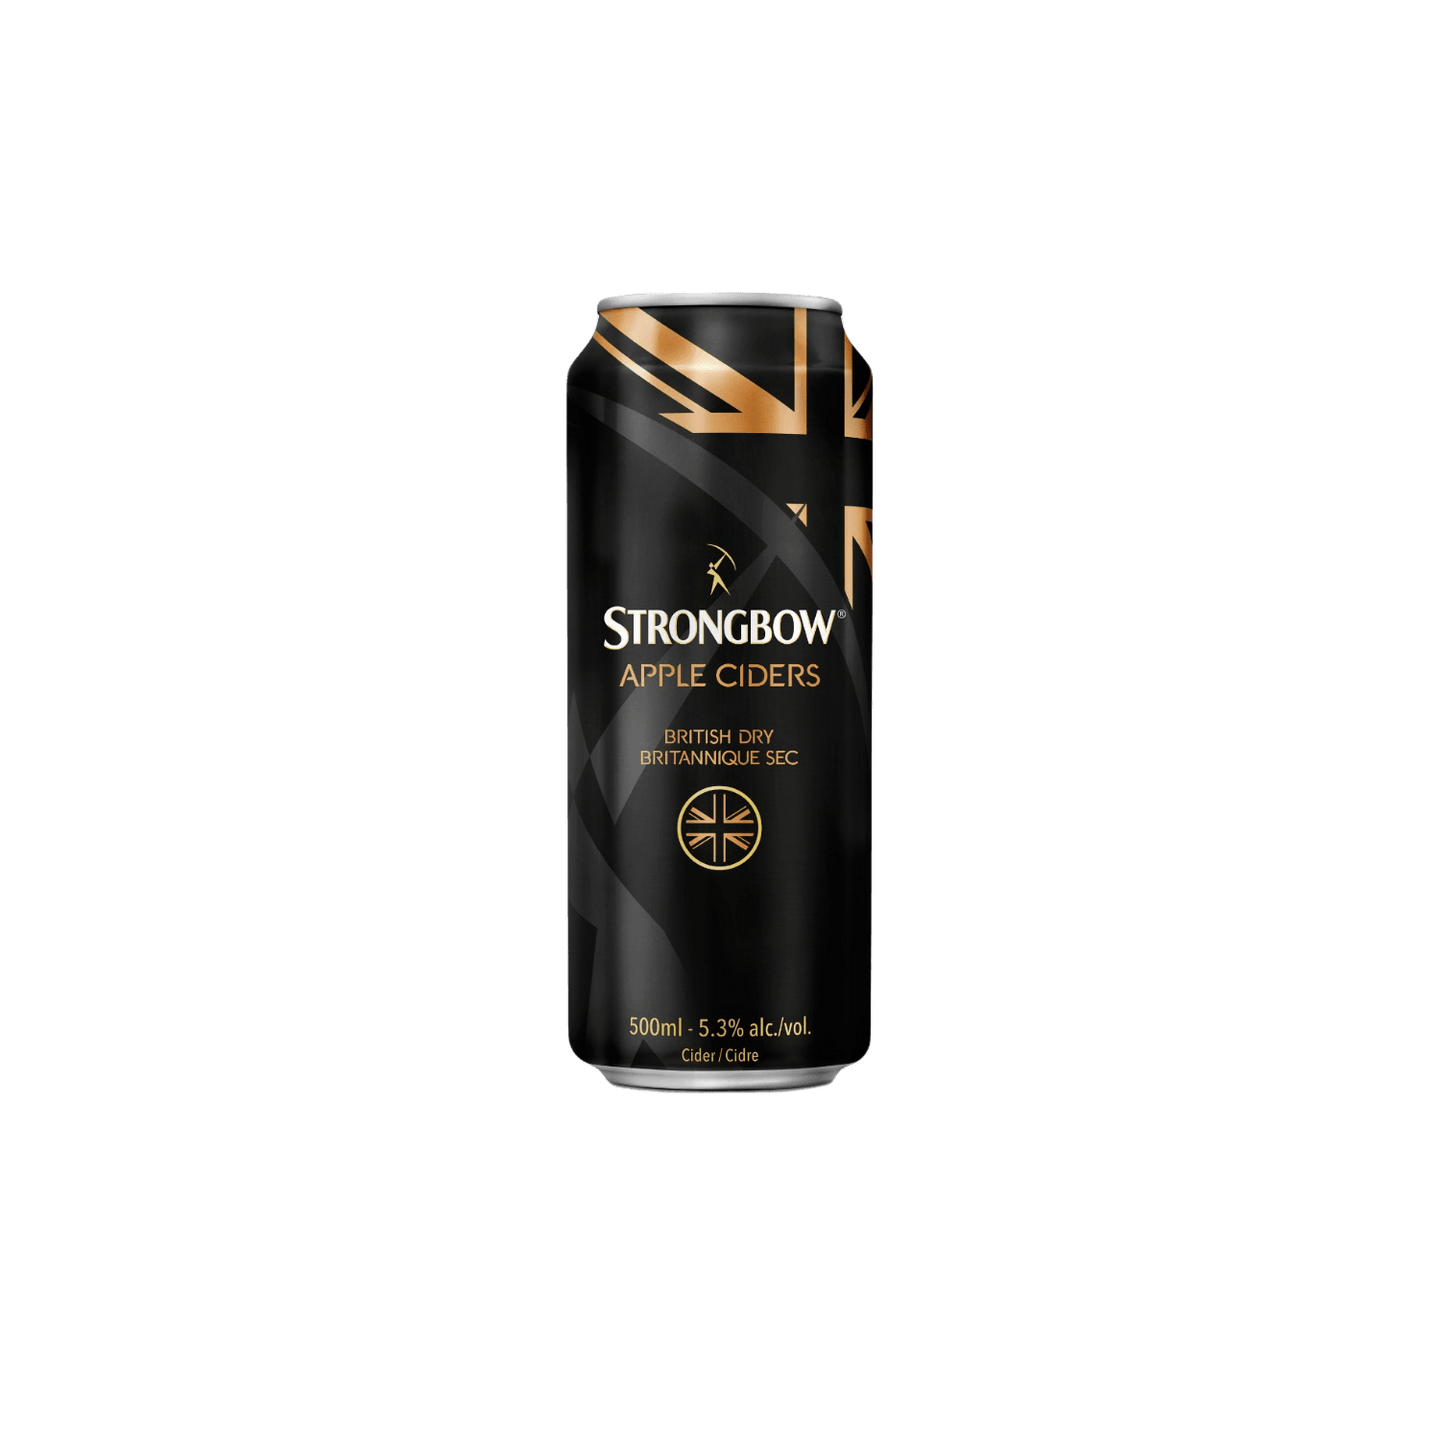 Strongbow - Apple Cider - British Dry - 500ml